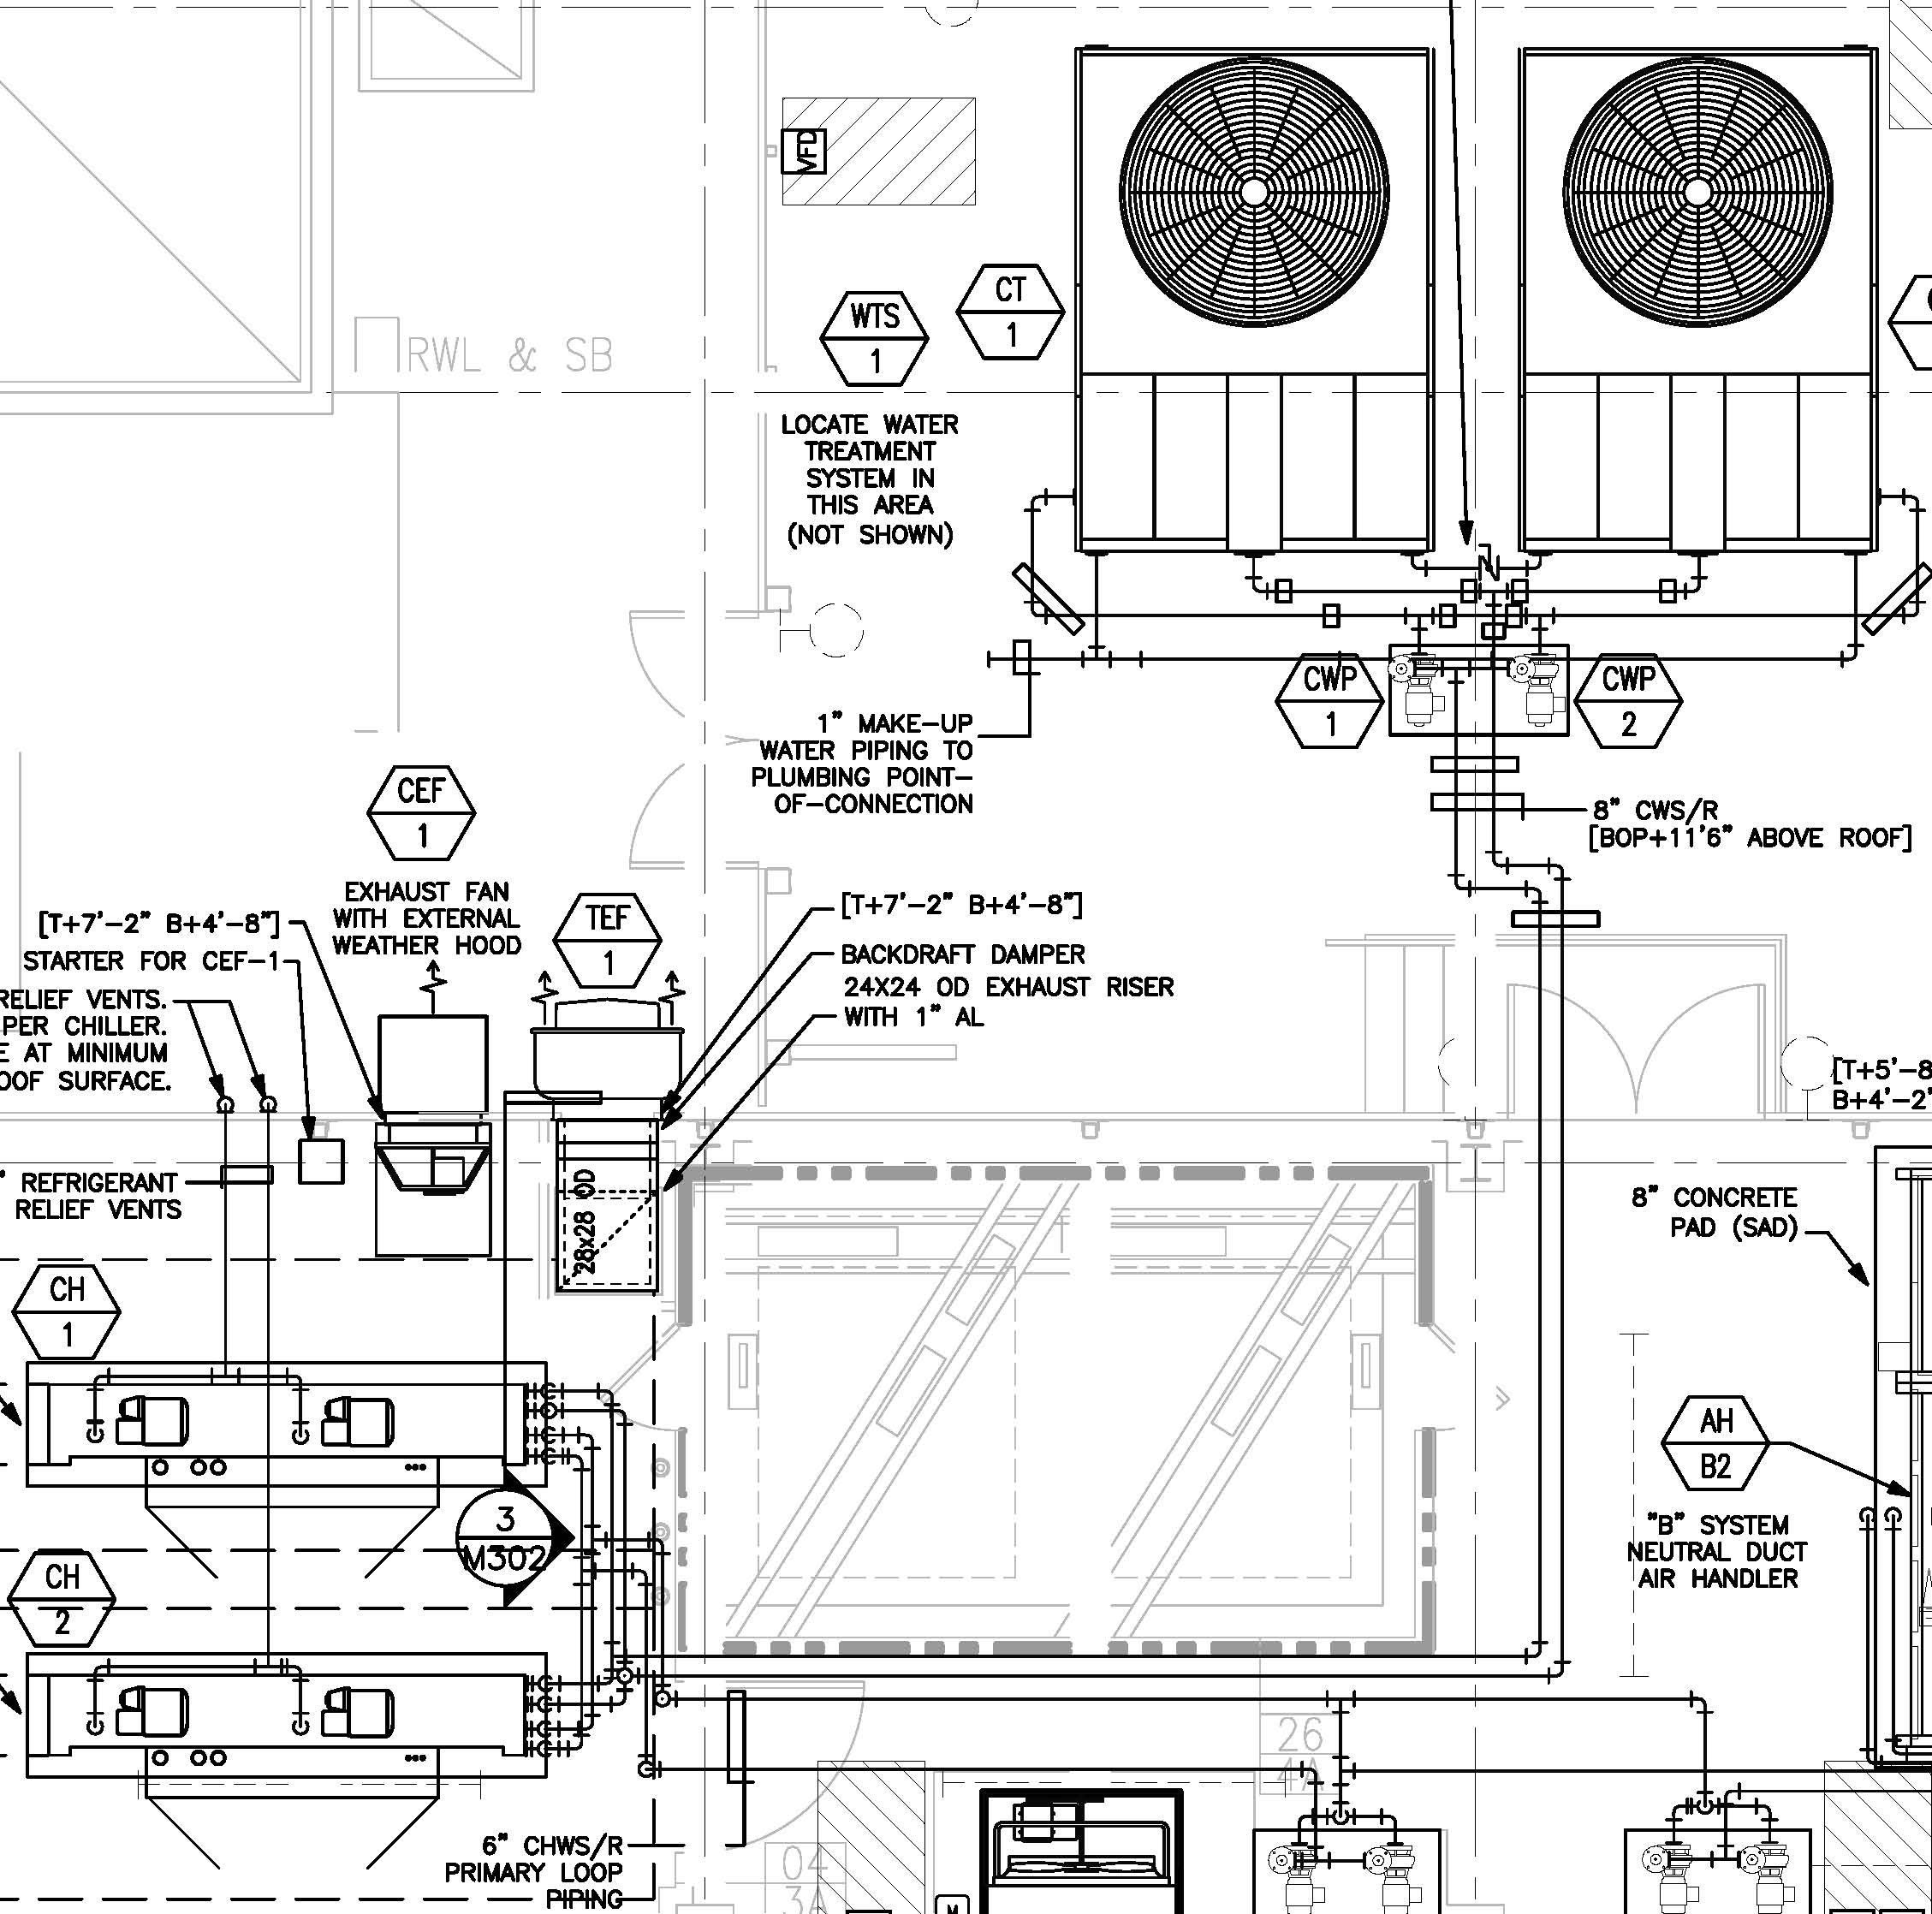 hvac wiring diagram - hvac control wiring diagram new wiring diagrams for  hvac new wiring diagrams